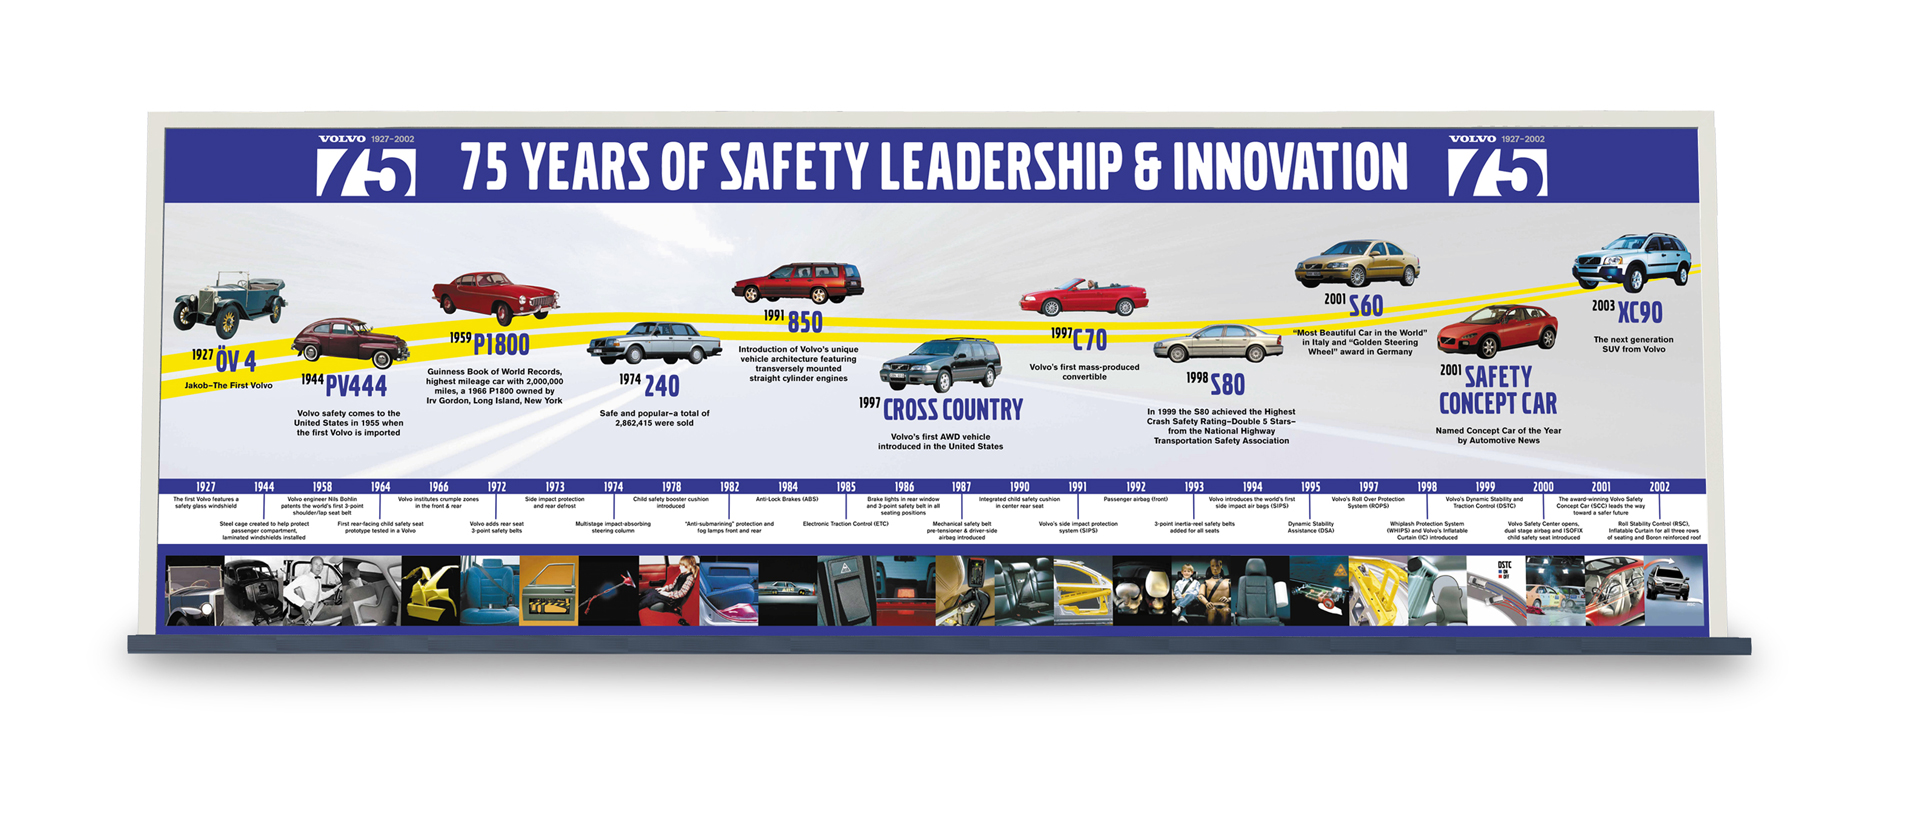 Volvo timeline project, 75 years of safety leadership and innovation